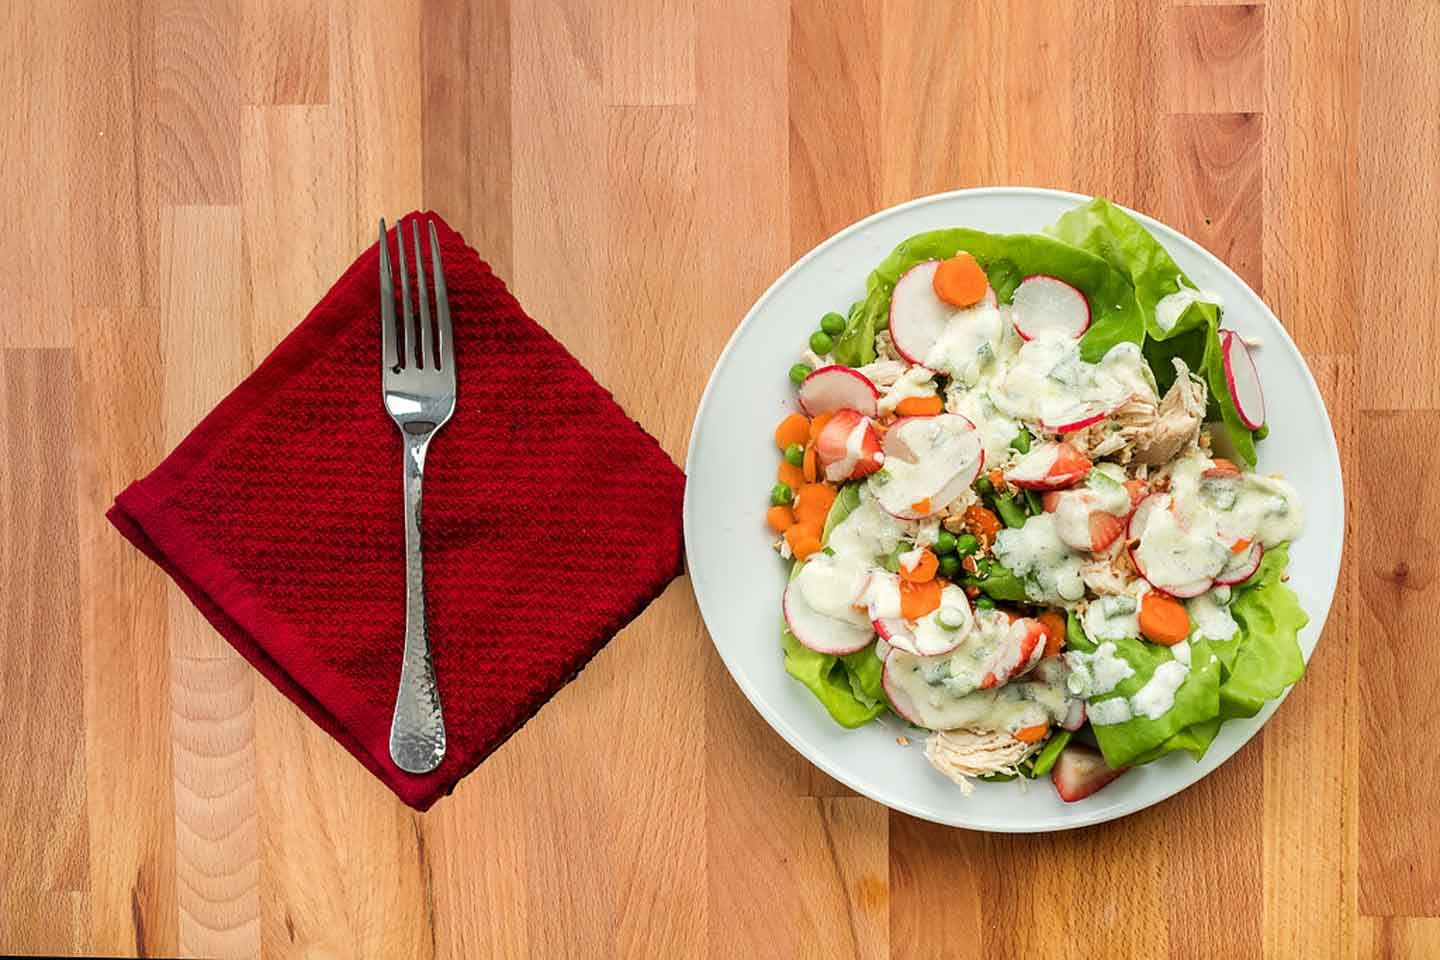 You'll Never Guess the Secret Ingredient in Chick-fil-A's Spring Chicken Salad Recipe